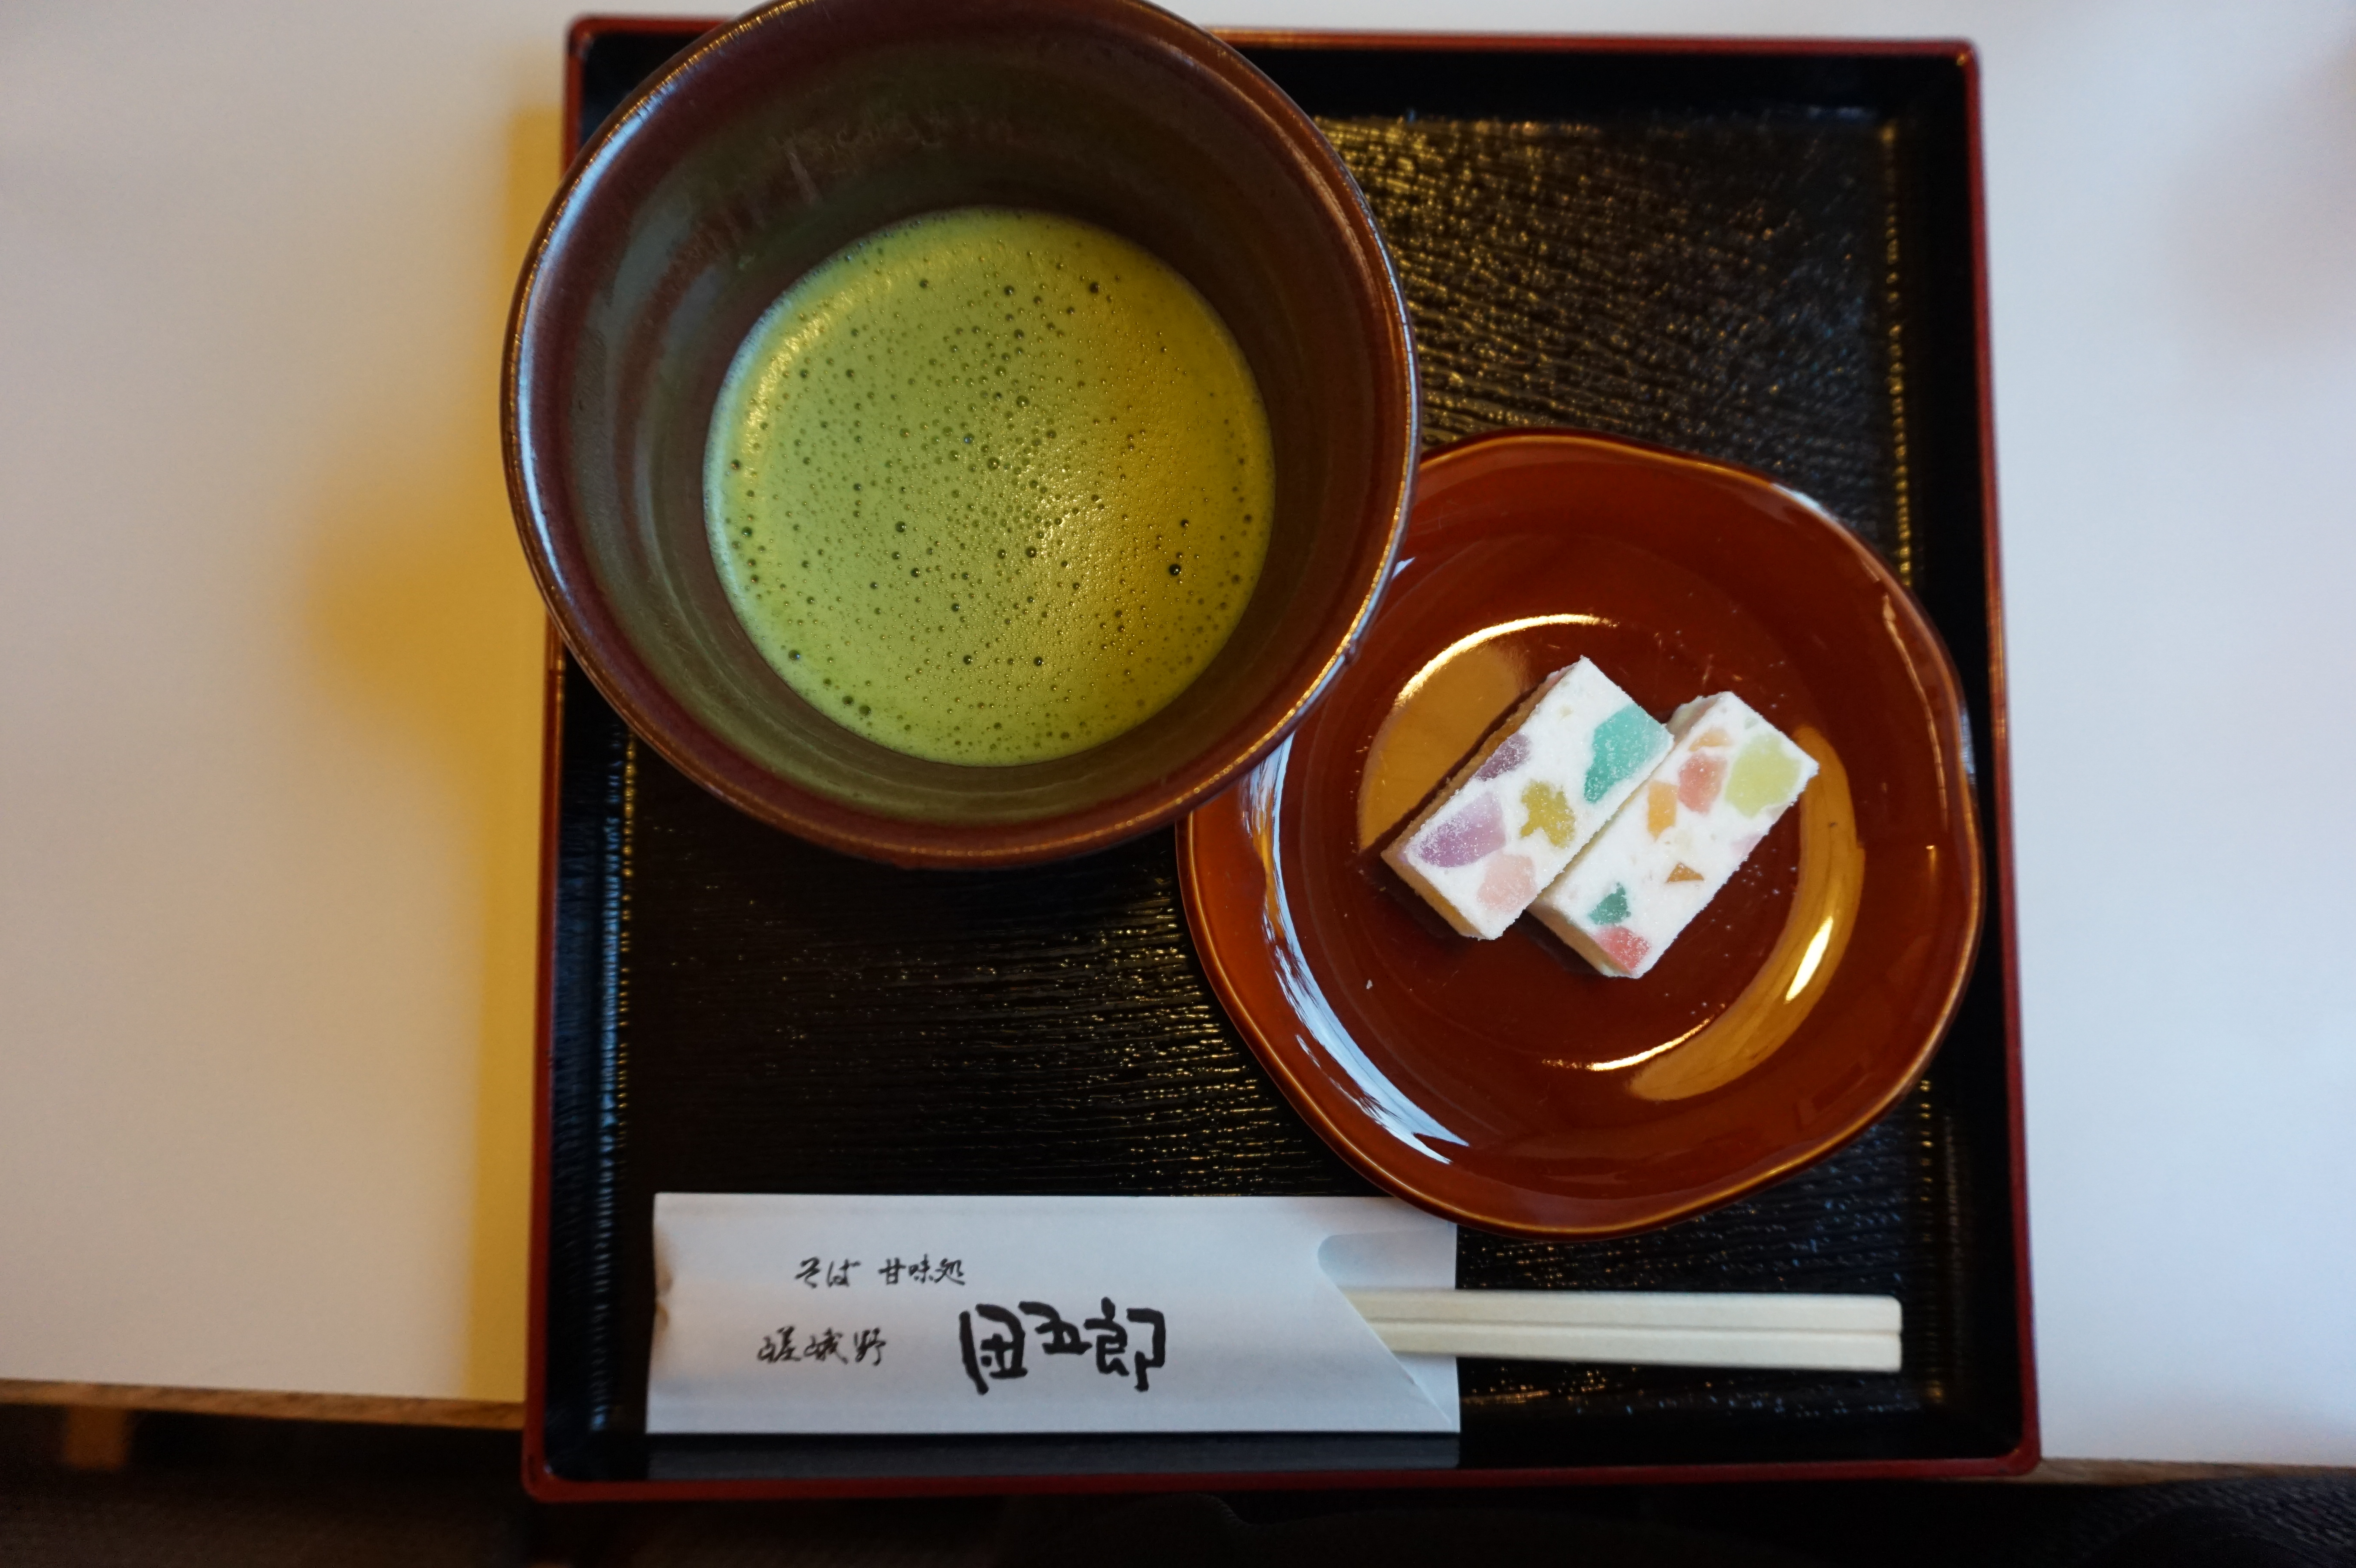 Matcha and a Sweet Made of Sugar, Agar, and Yuzu